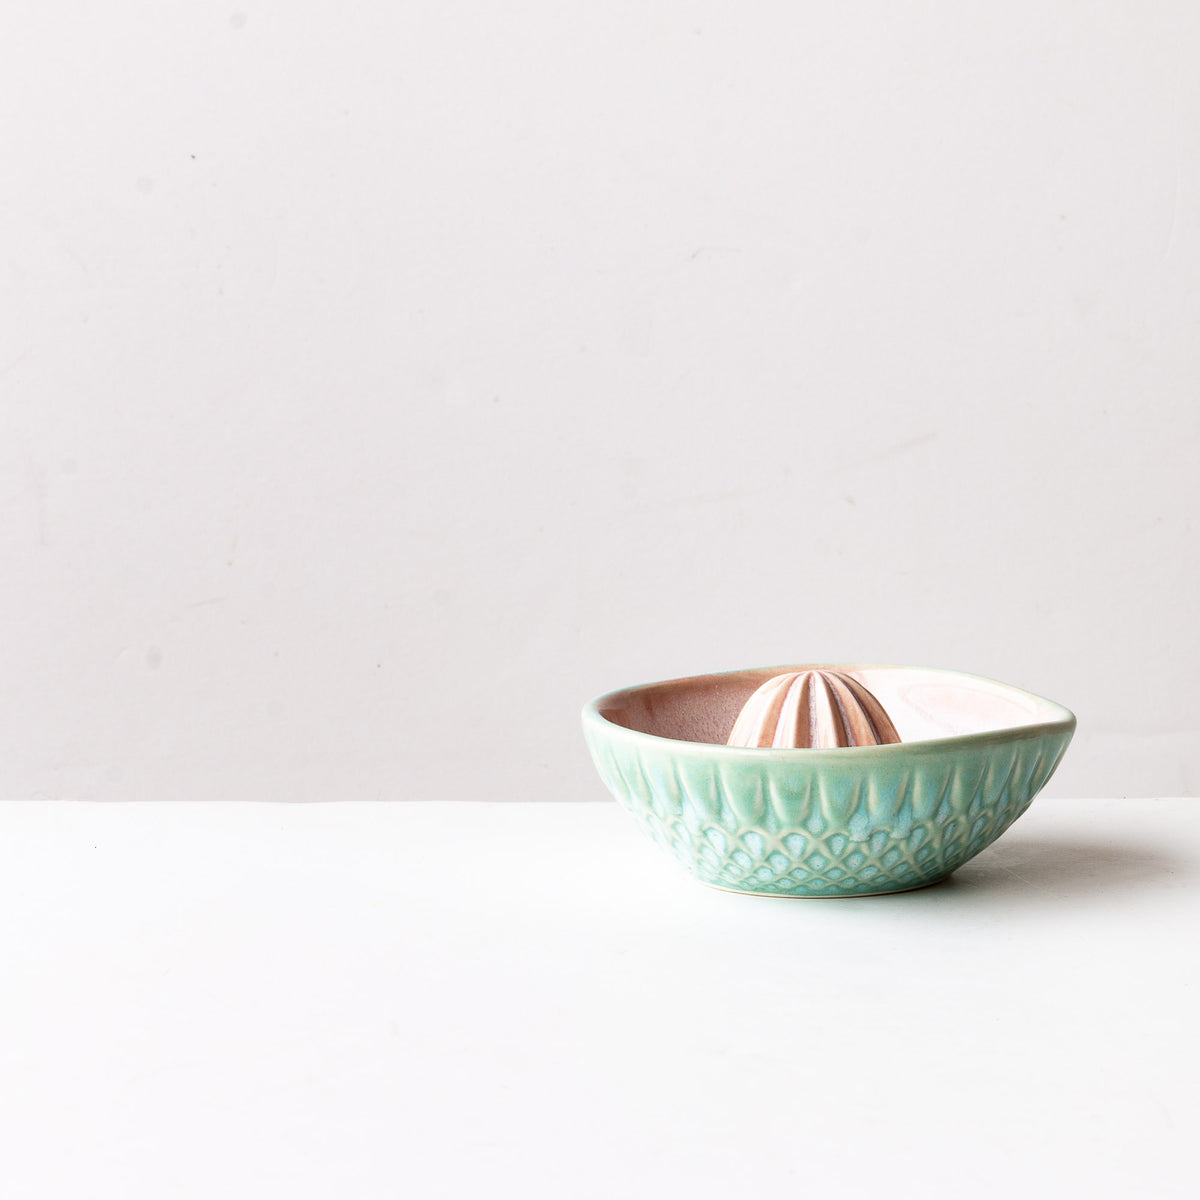 Side View - Watercolour Handcrafted Small Porcelain Citrus Juicer - Sold by Chic & Basta